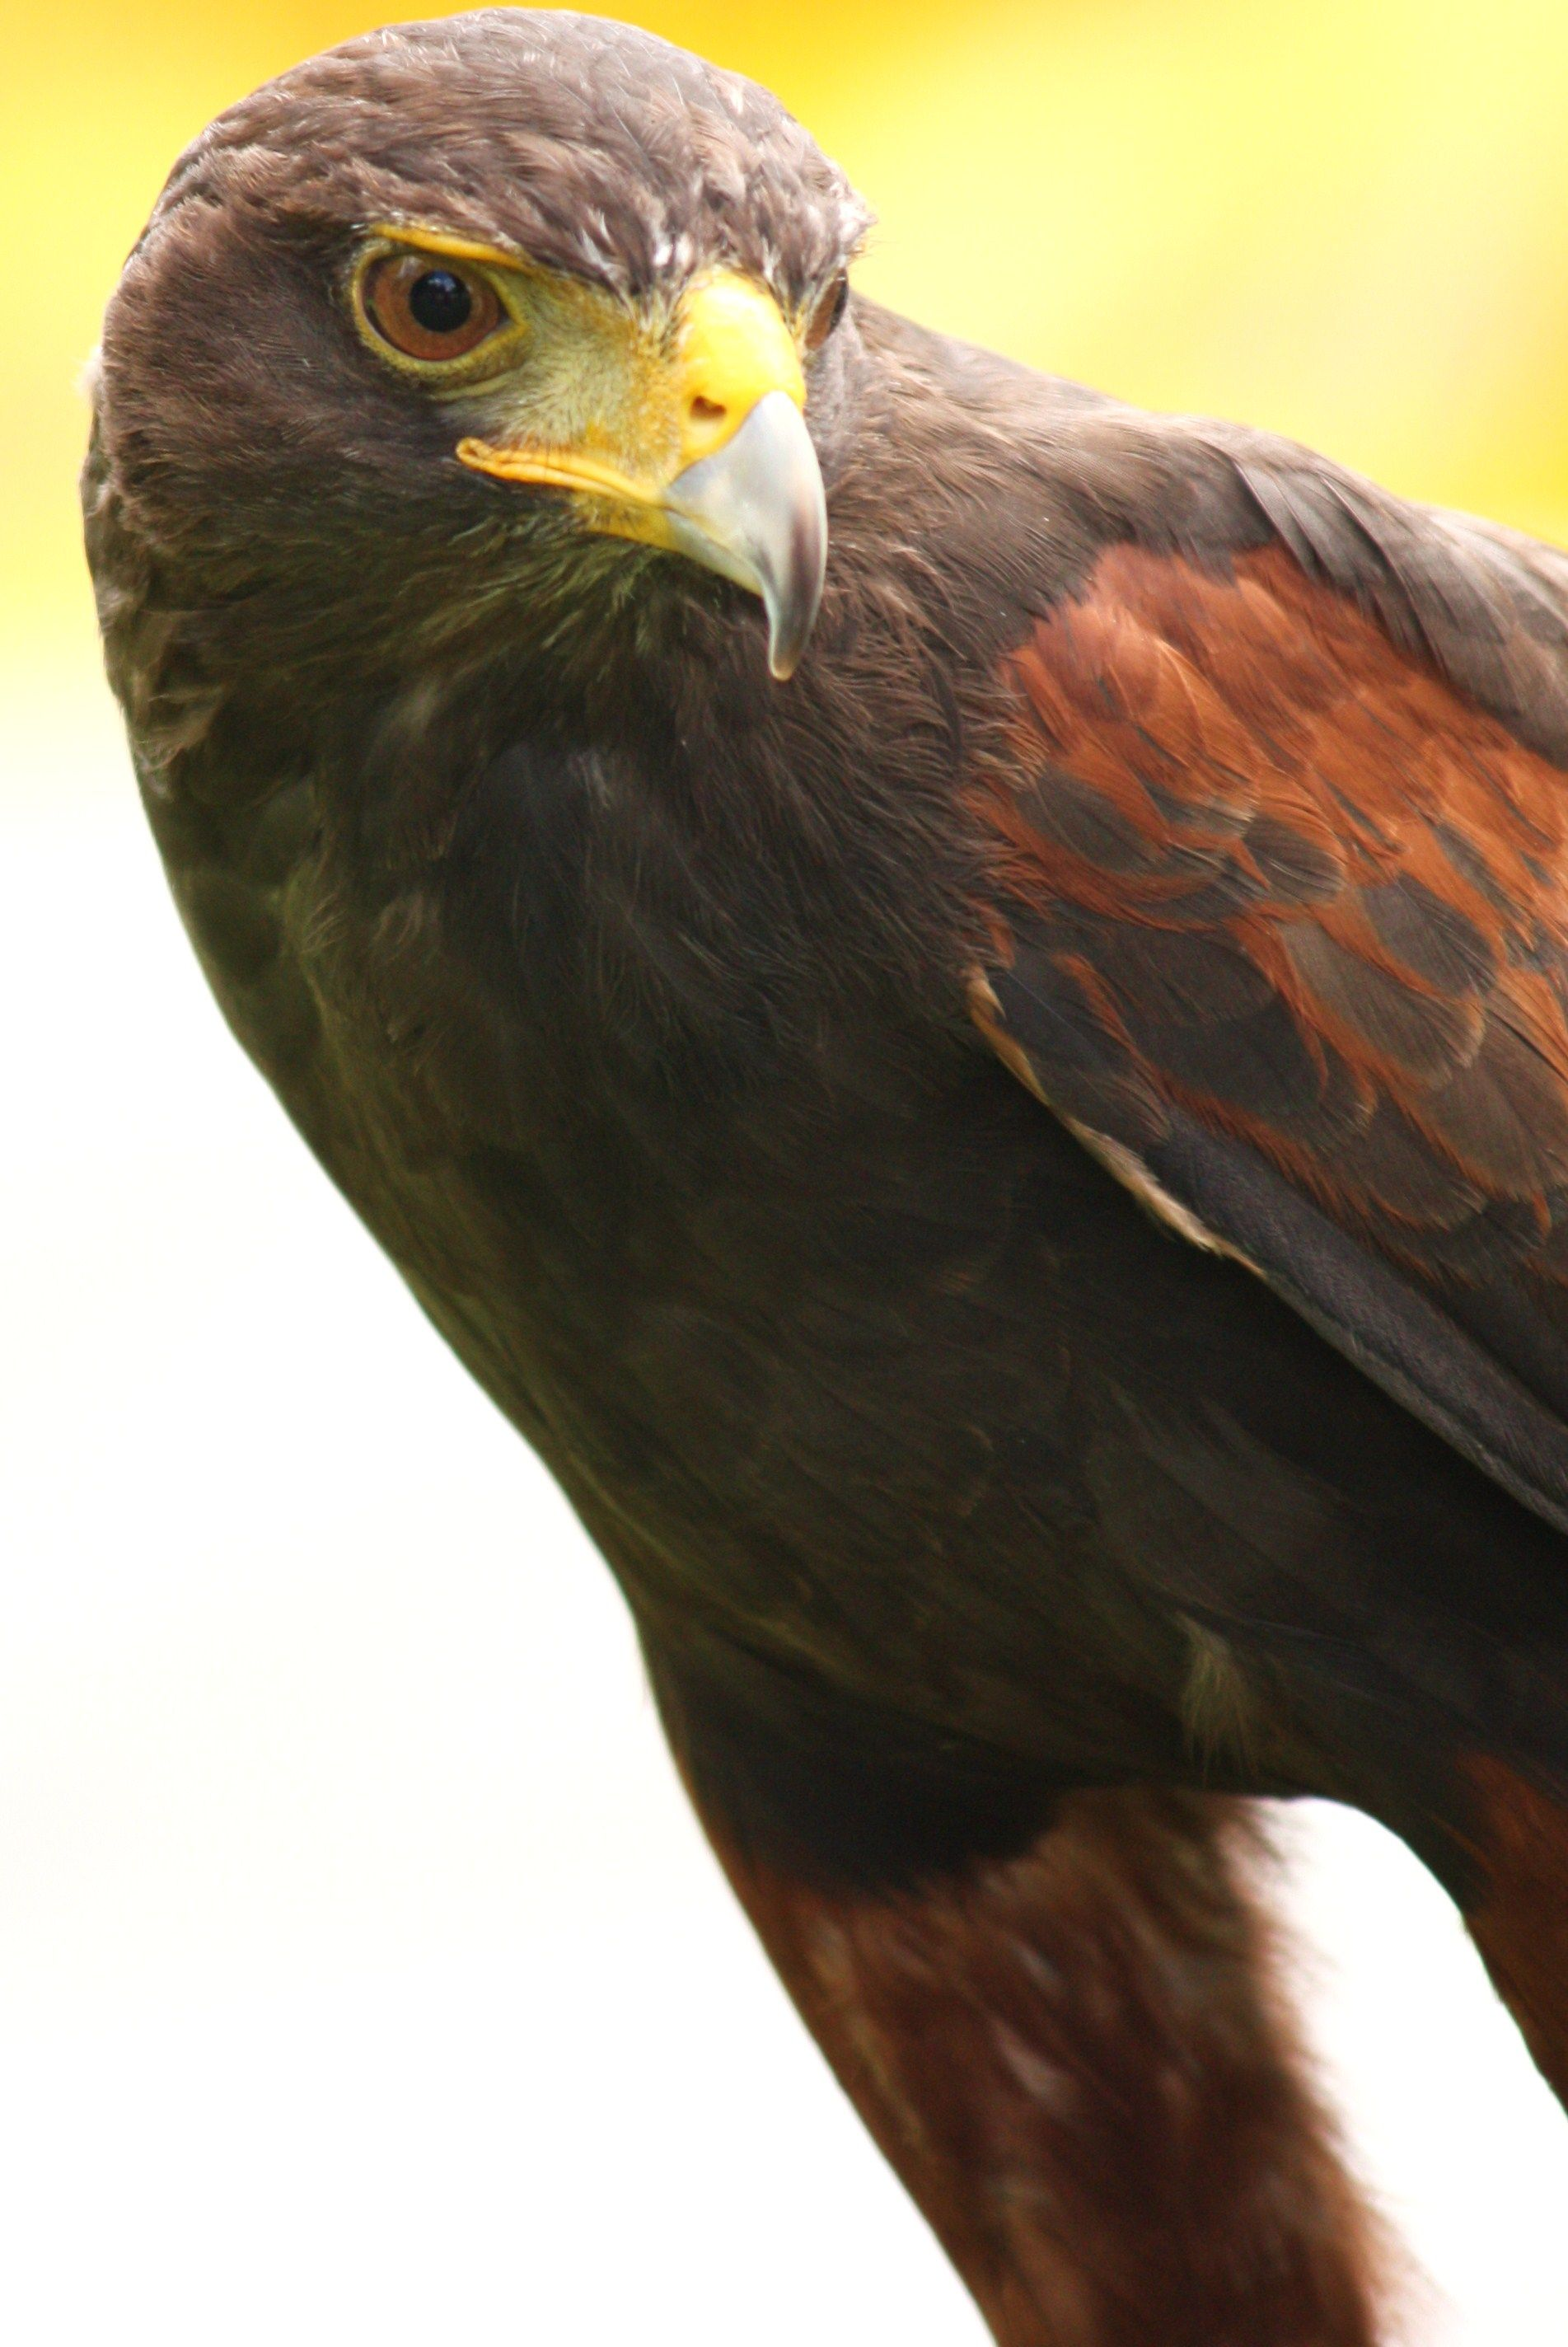 Harris Hawk These Guys Come From The Deserts Of Texas Arizona And Chile They Are One Of The Only Birds Of Prey To H Raptors Bird Wild Birds Birds Of Prey